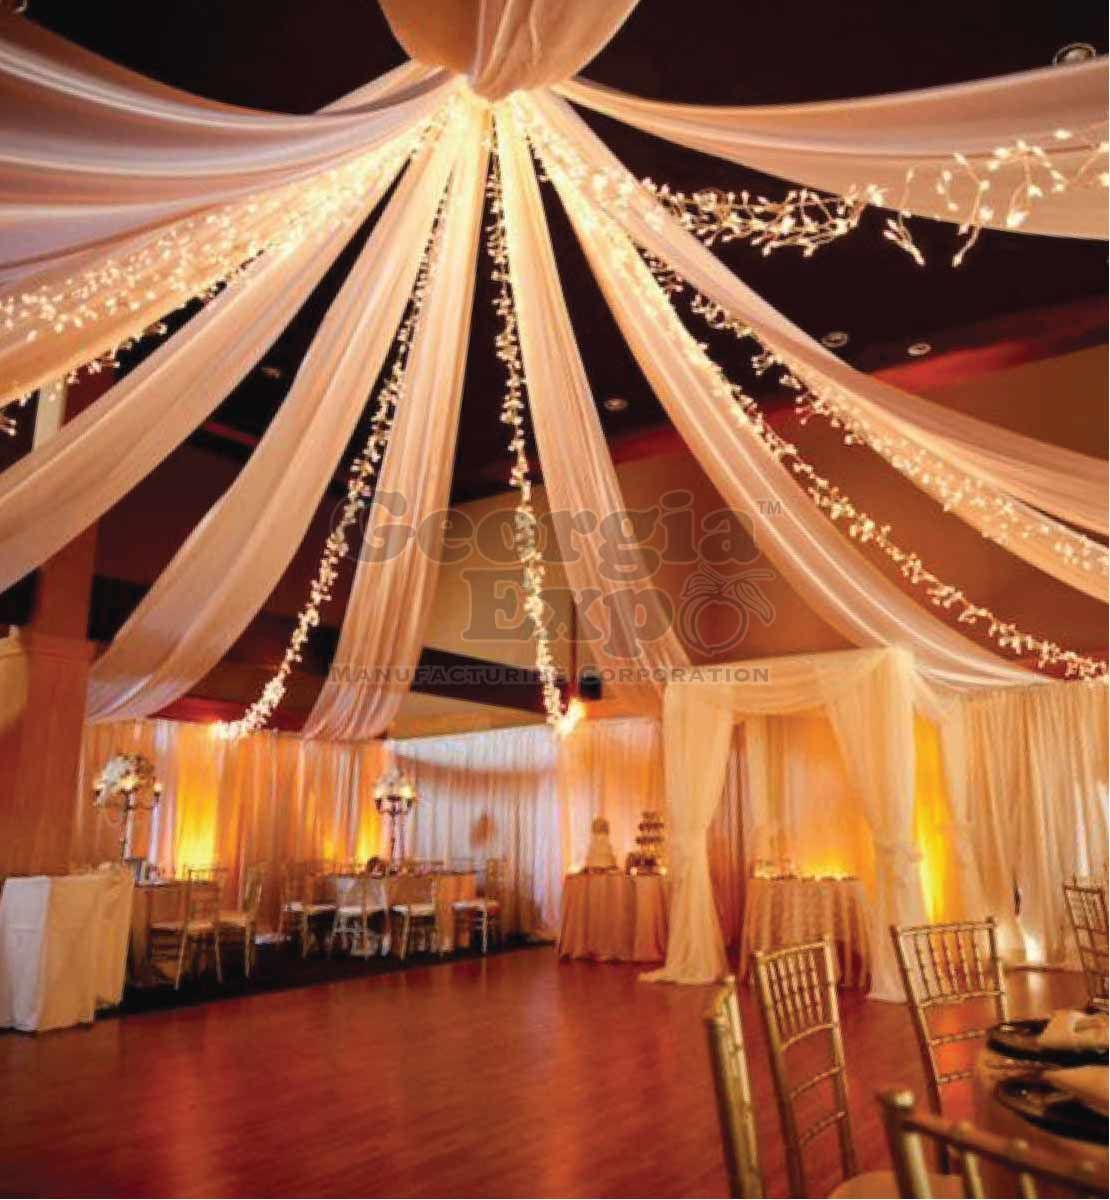 Ceiling Drape Panel Sheer Ceiling Drape Panels Drape Panels Sheer Voile Wedding Decor Georgia Expo In 2020 Wedding Ceiling Ceiling Draping Reception Ceiling